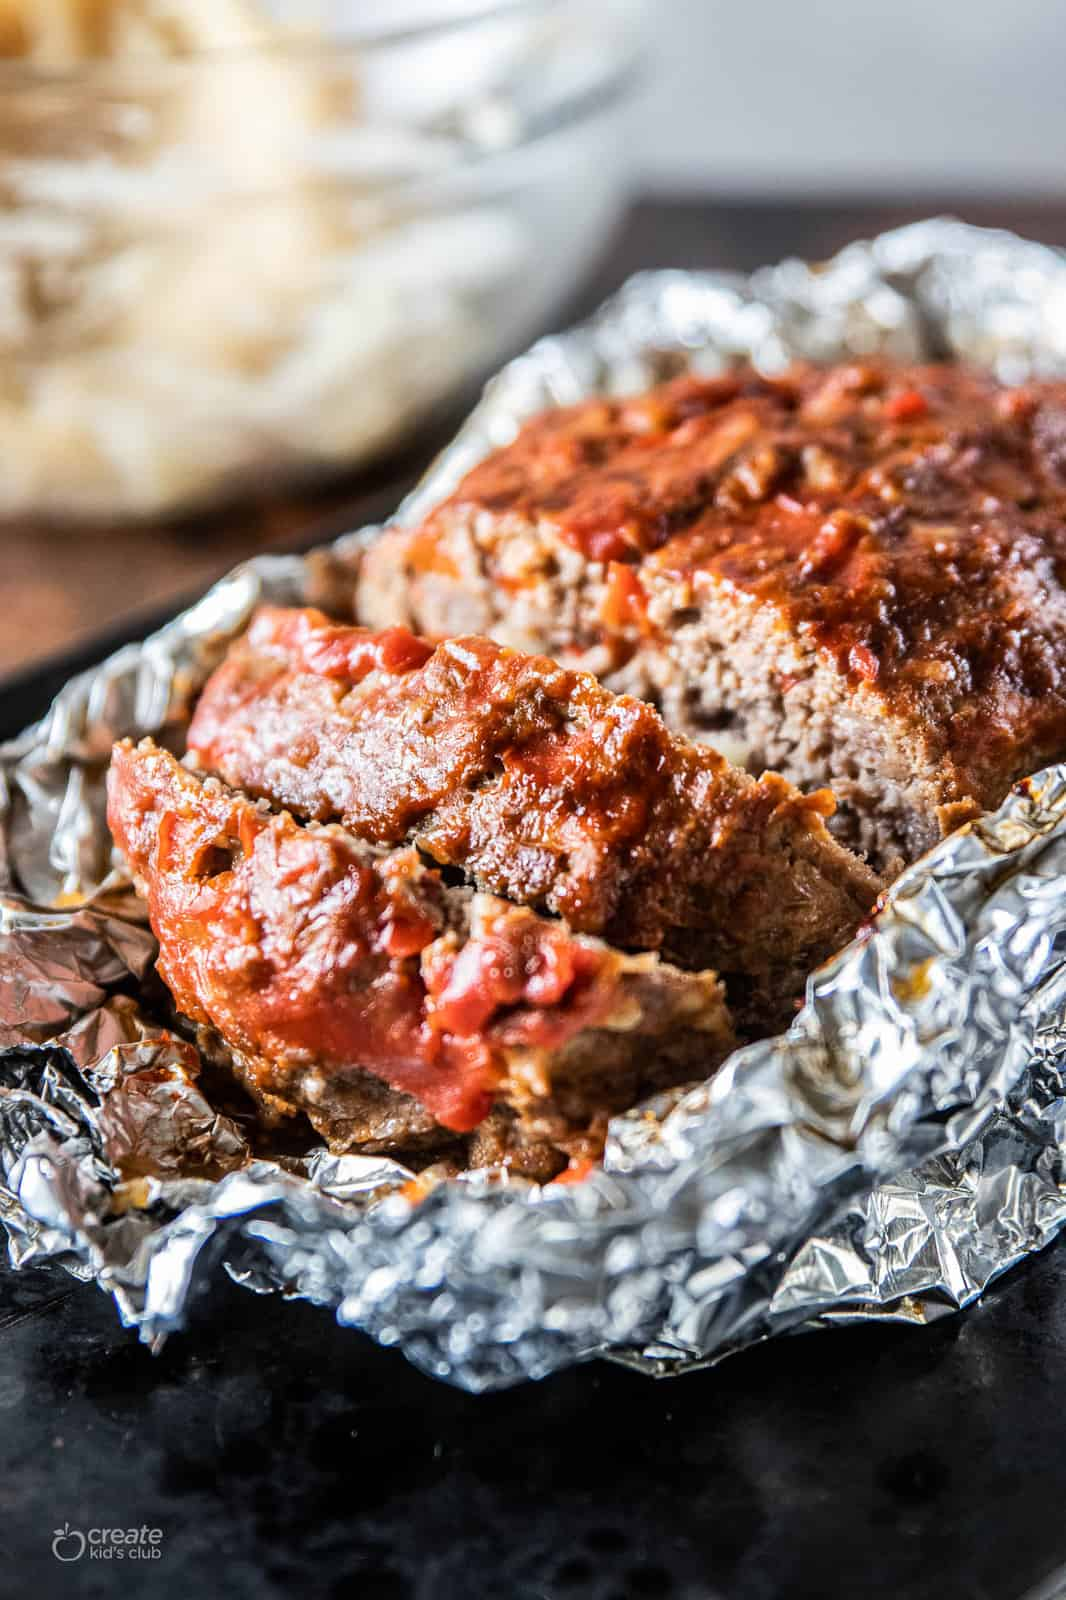 meatloaf sliced into pieces